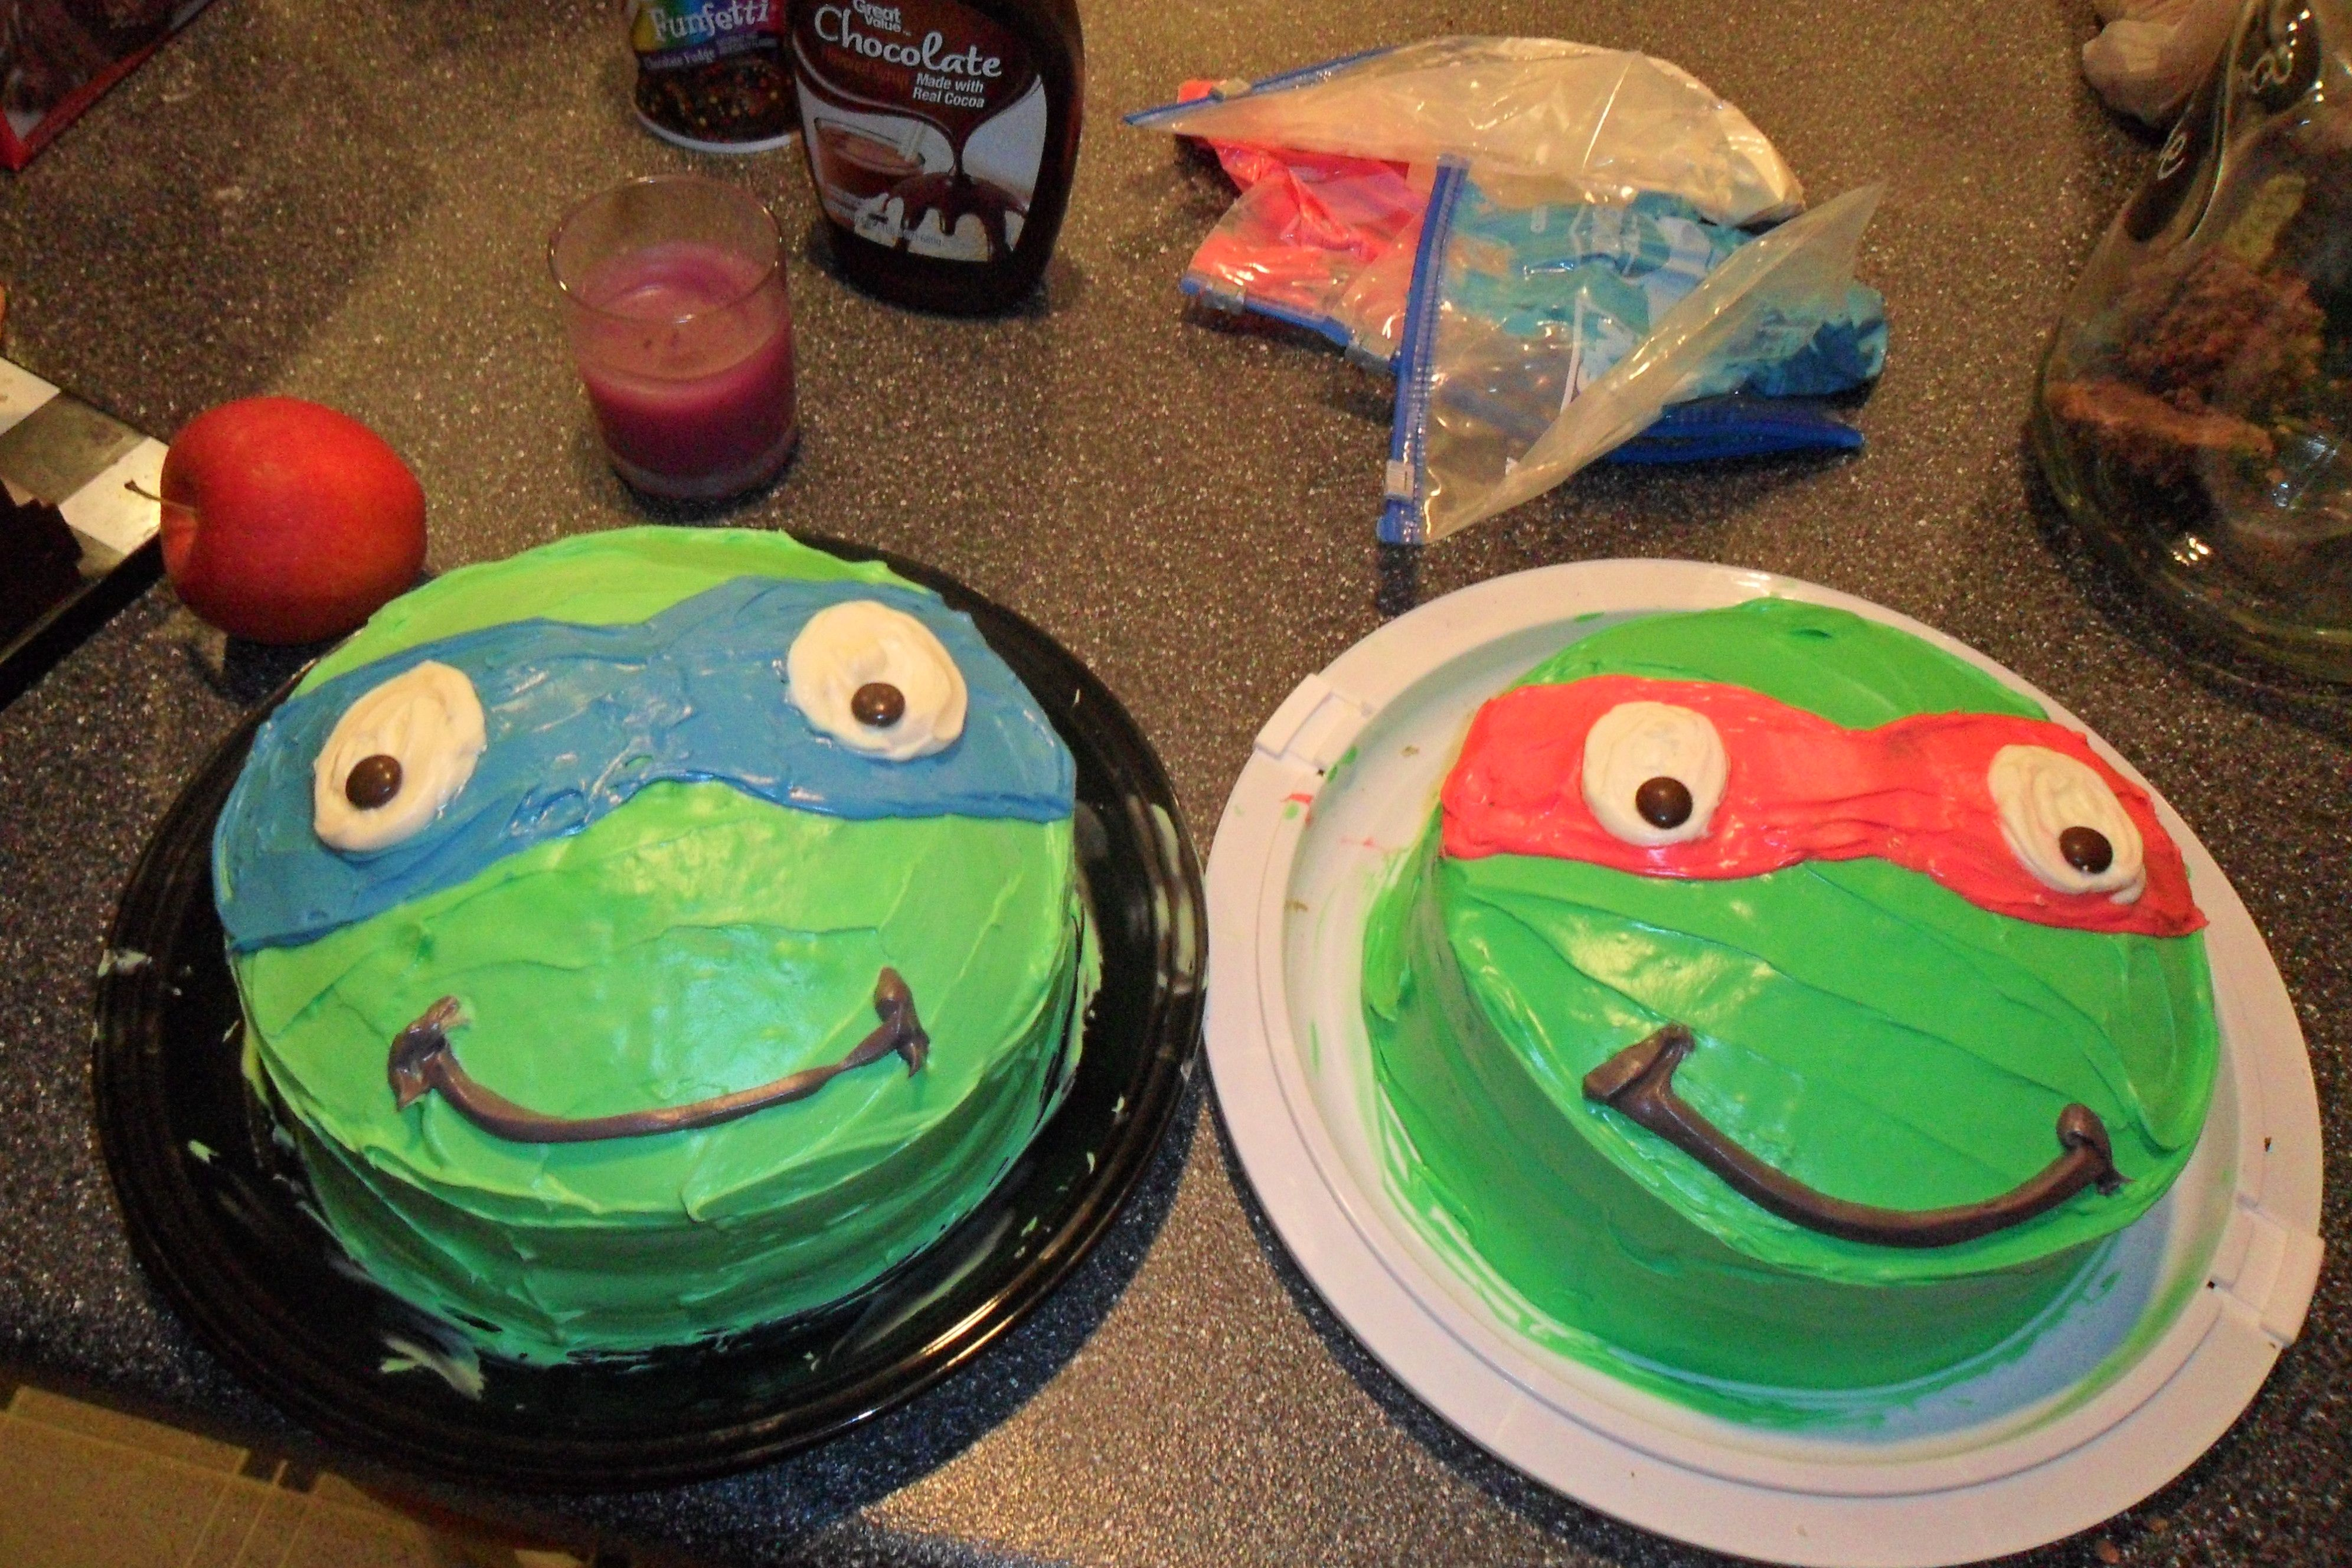 Teenage mutant ninja turtle cakes I made. very simple and used ziplock bags with the corner clipped to decorate.. and m&m's for part of the eye